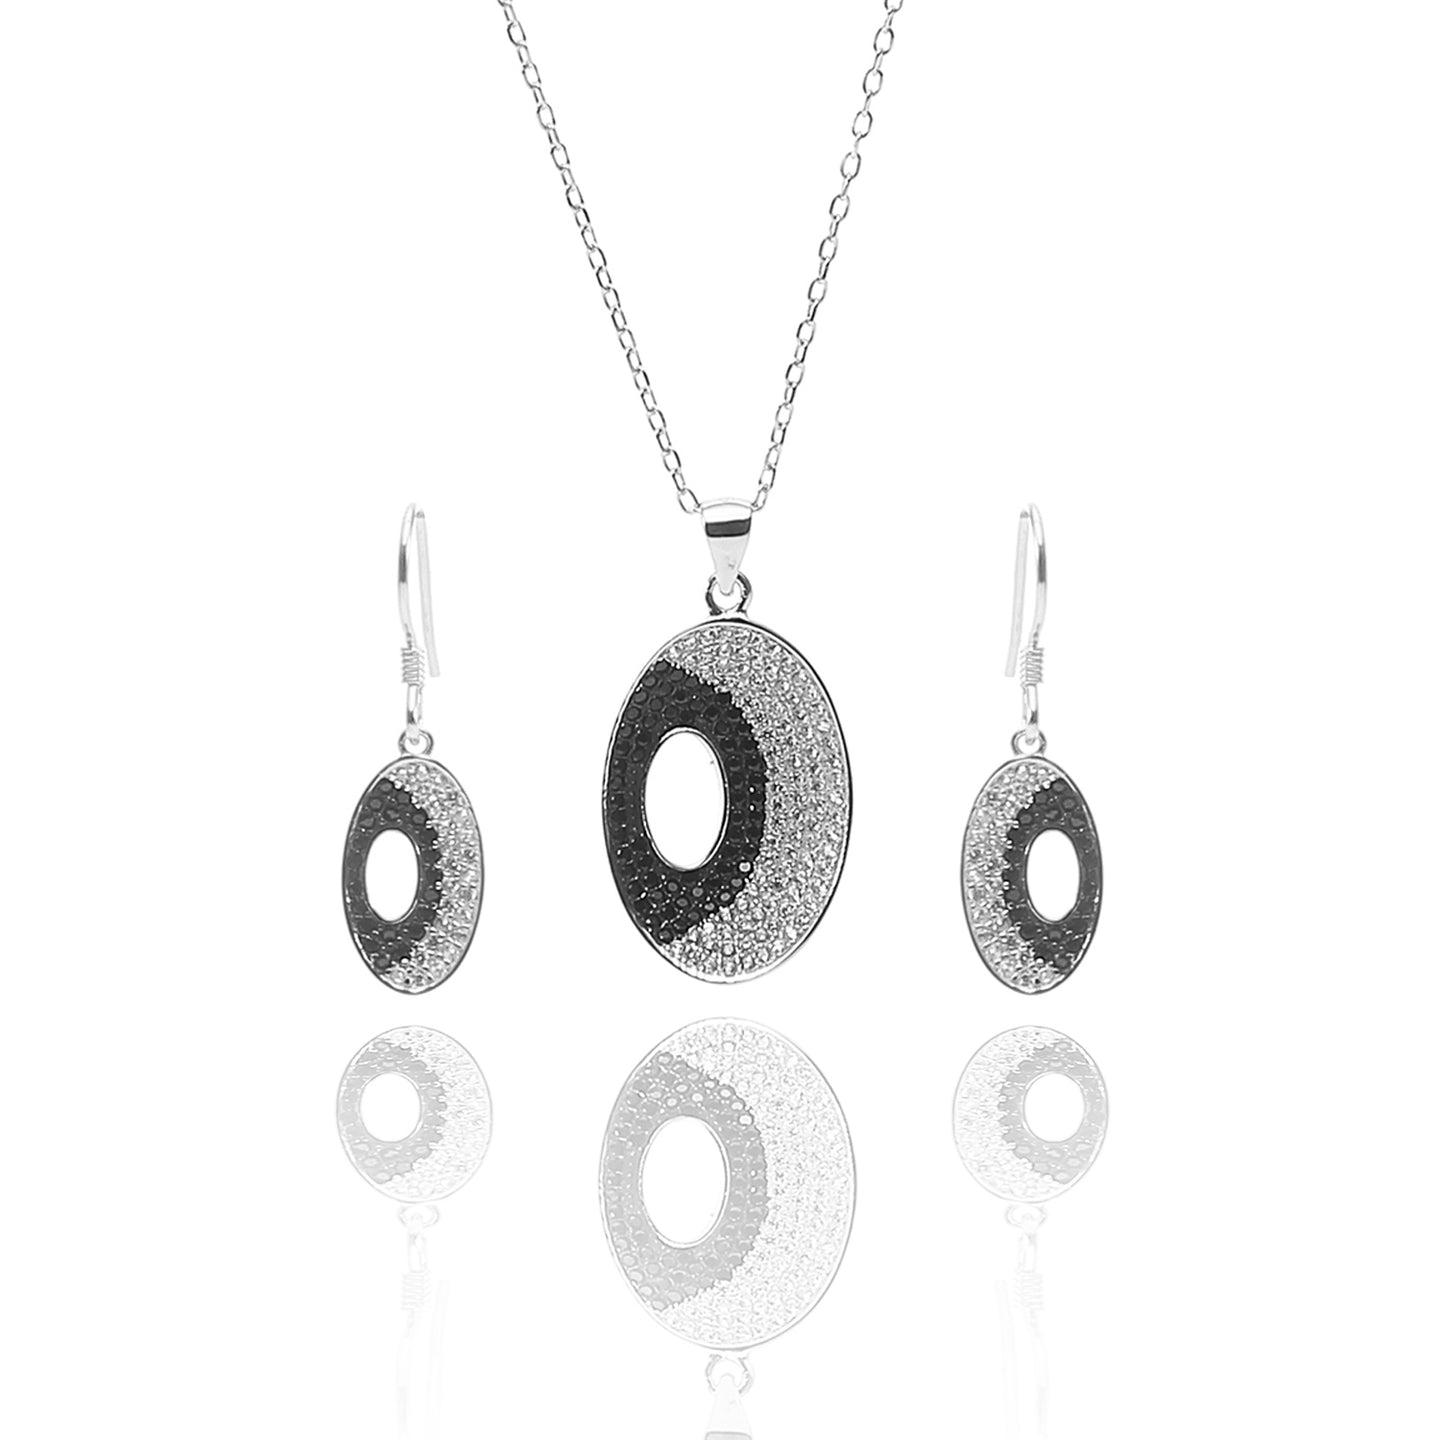 Juno Pendant Necklace and Earrings Set - ARJW1018RD - ARCADIO LIFESTYLE